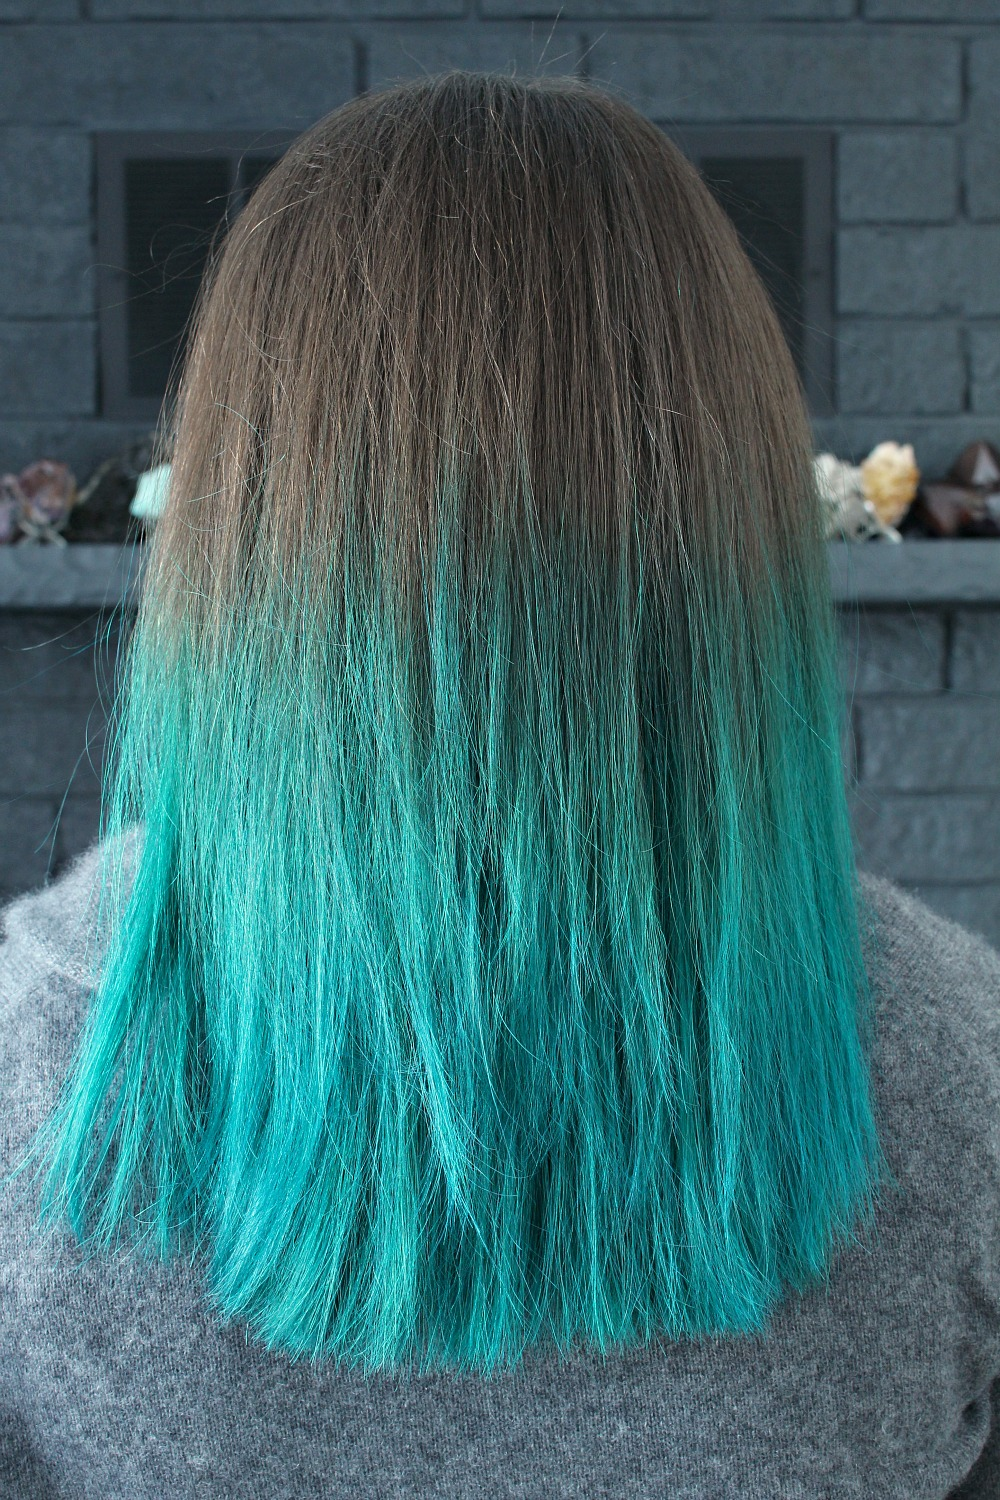 Manic Panic Amplified VooDoo Blue Color // Turquoise Dip Dyed Hair // Mermaid Hair